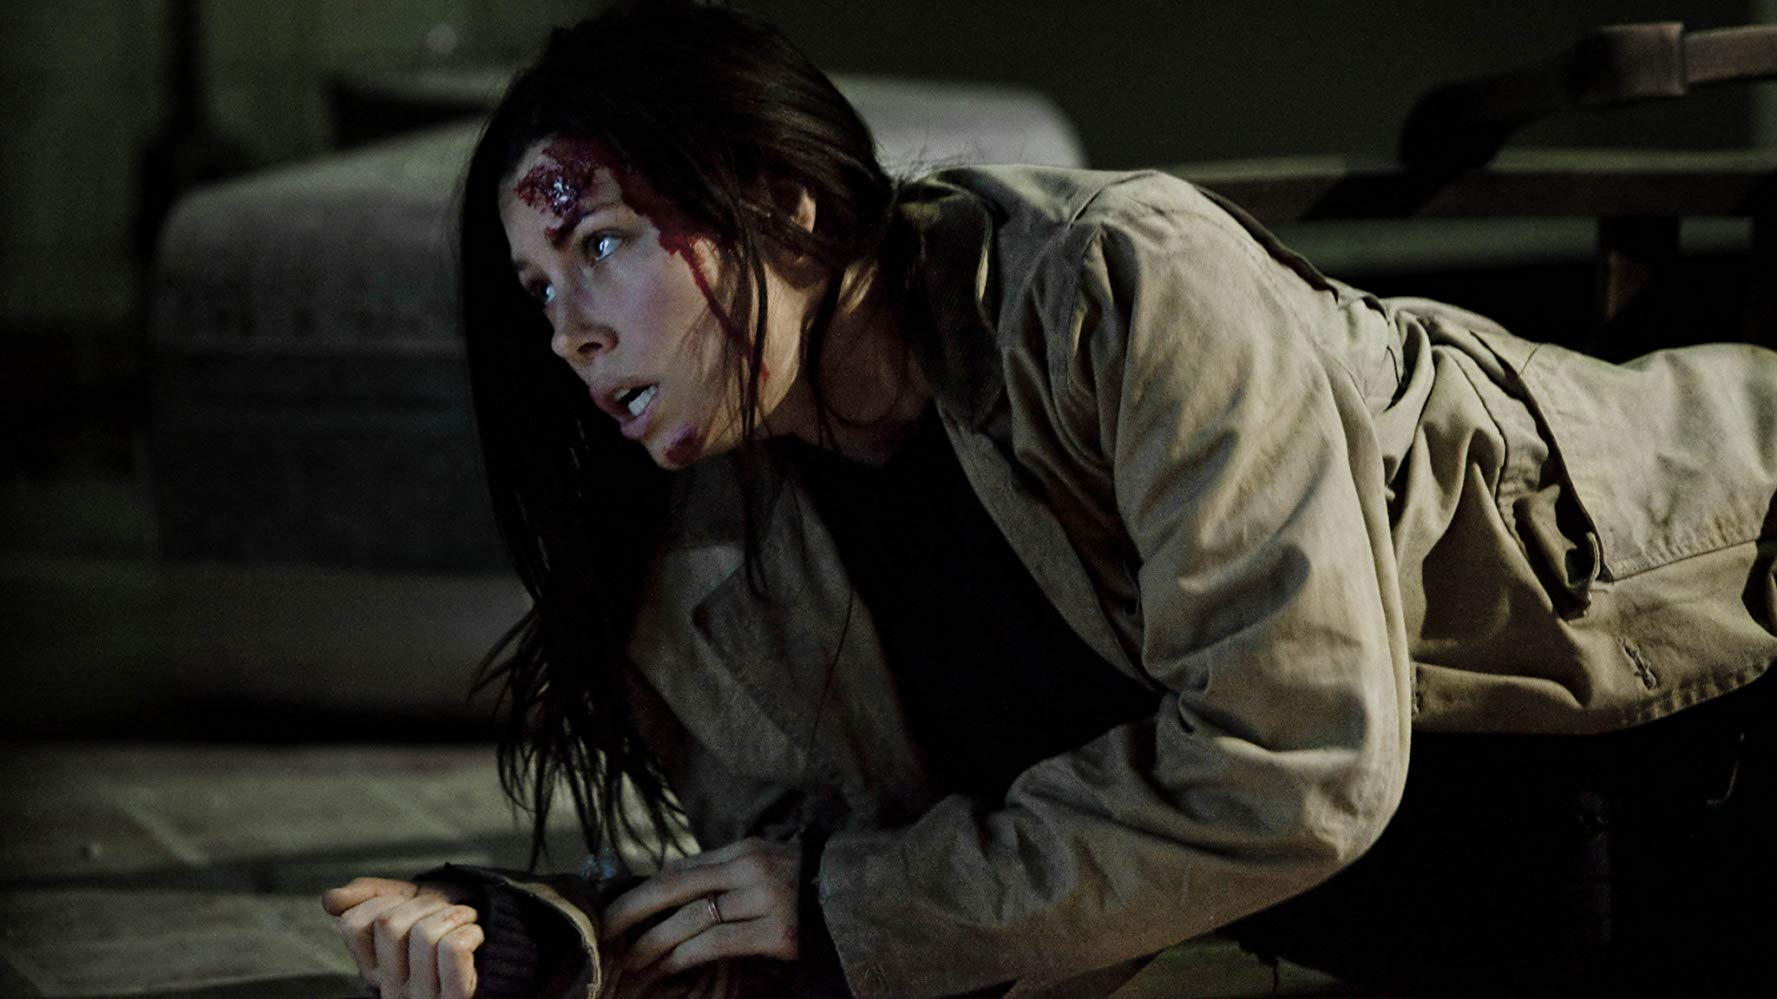 A battered Jessica Biel as a mother dealing with the abduction of her child in The Tall Man (2012)